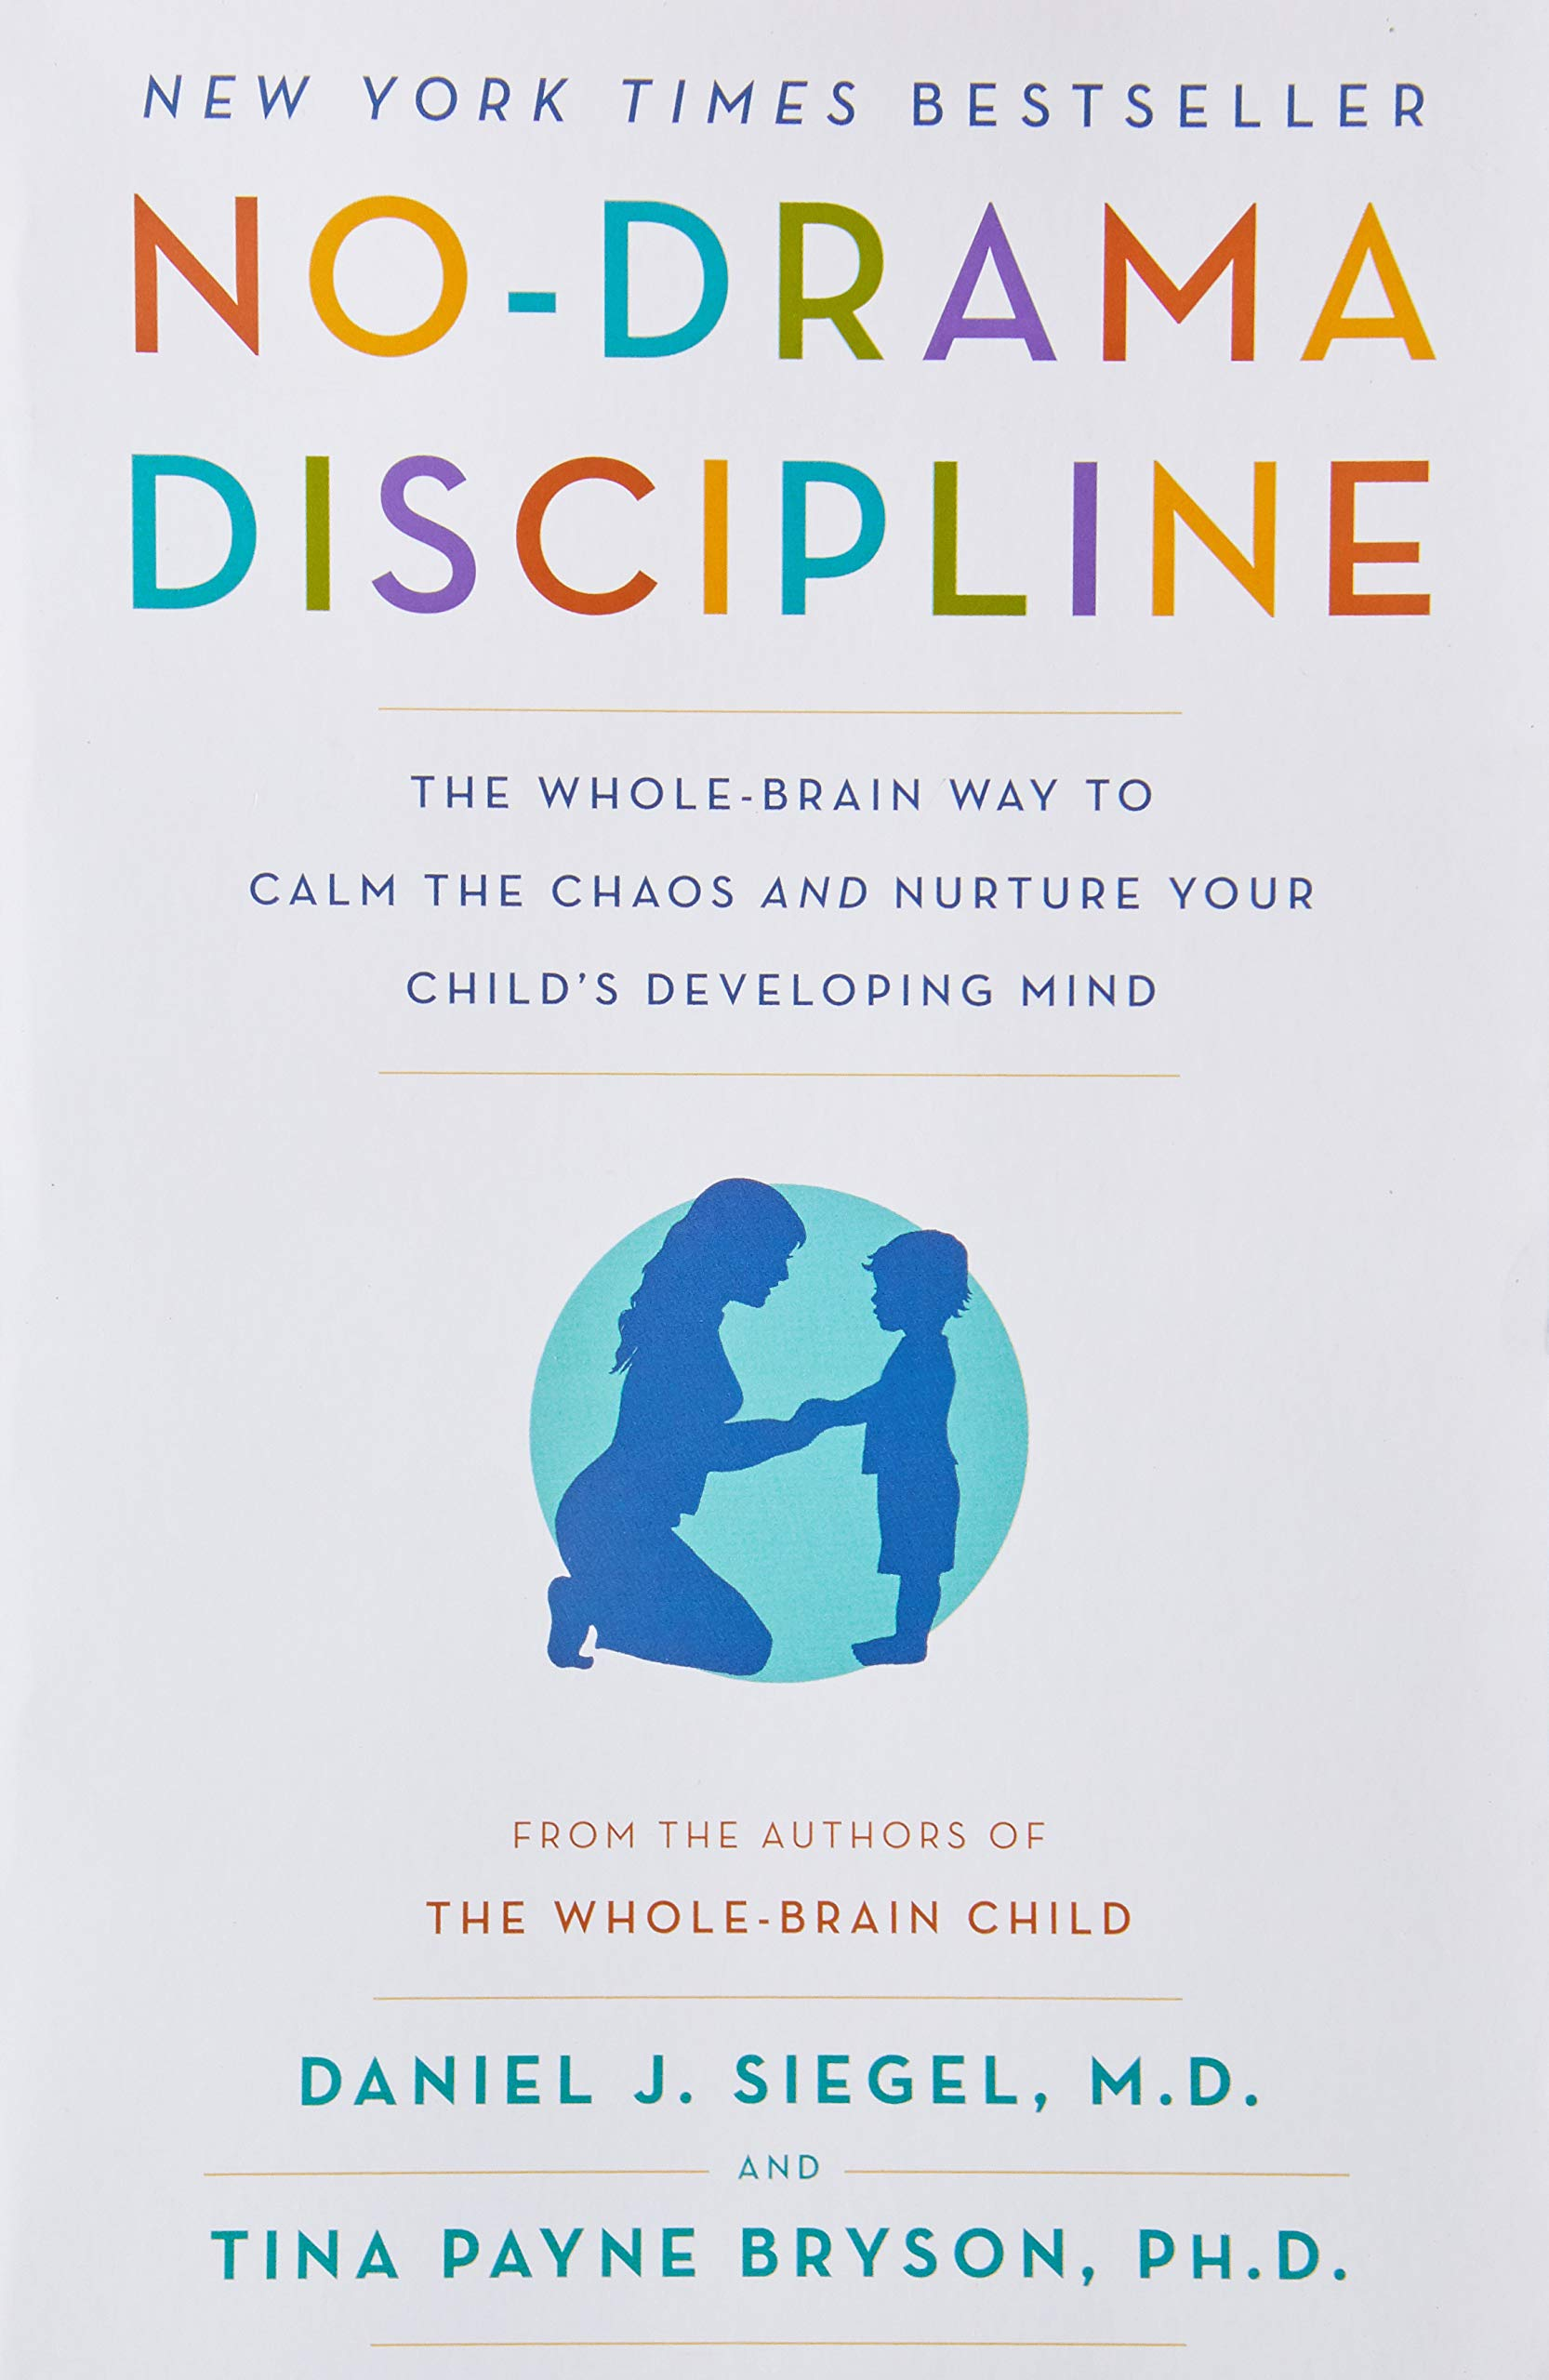 No-Drama Discipline: The Whole-Brain Way to Calm the Chaos and Nurture Your Child's Developing Mind